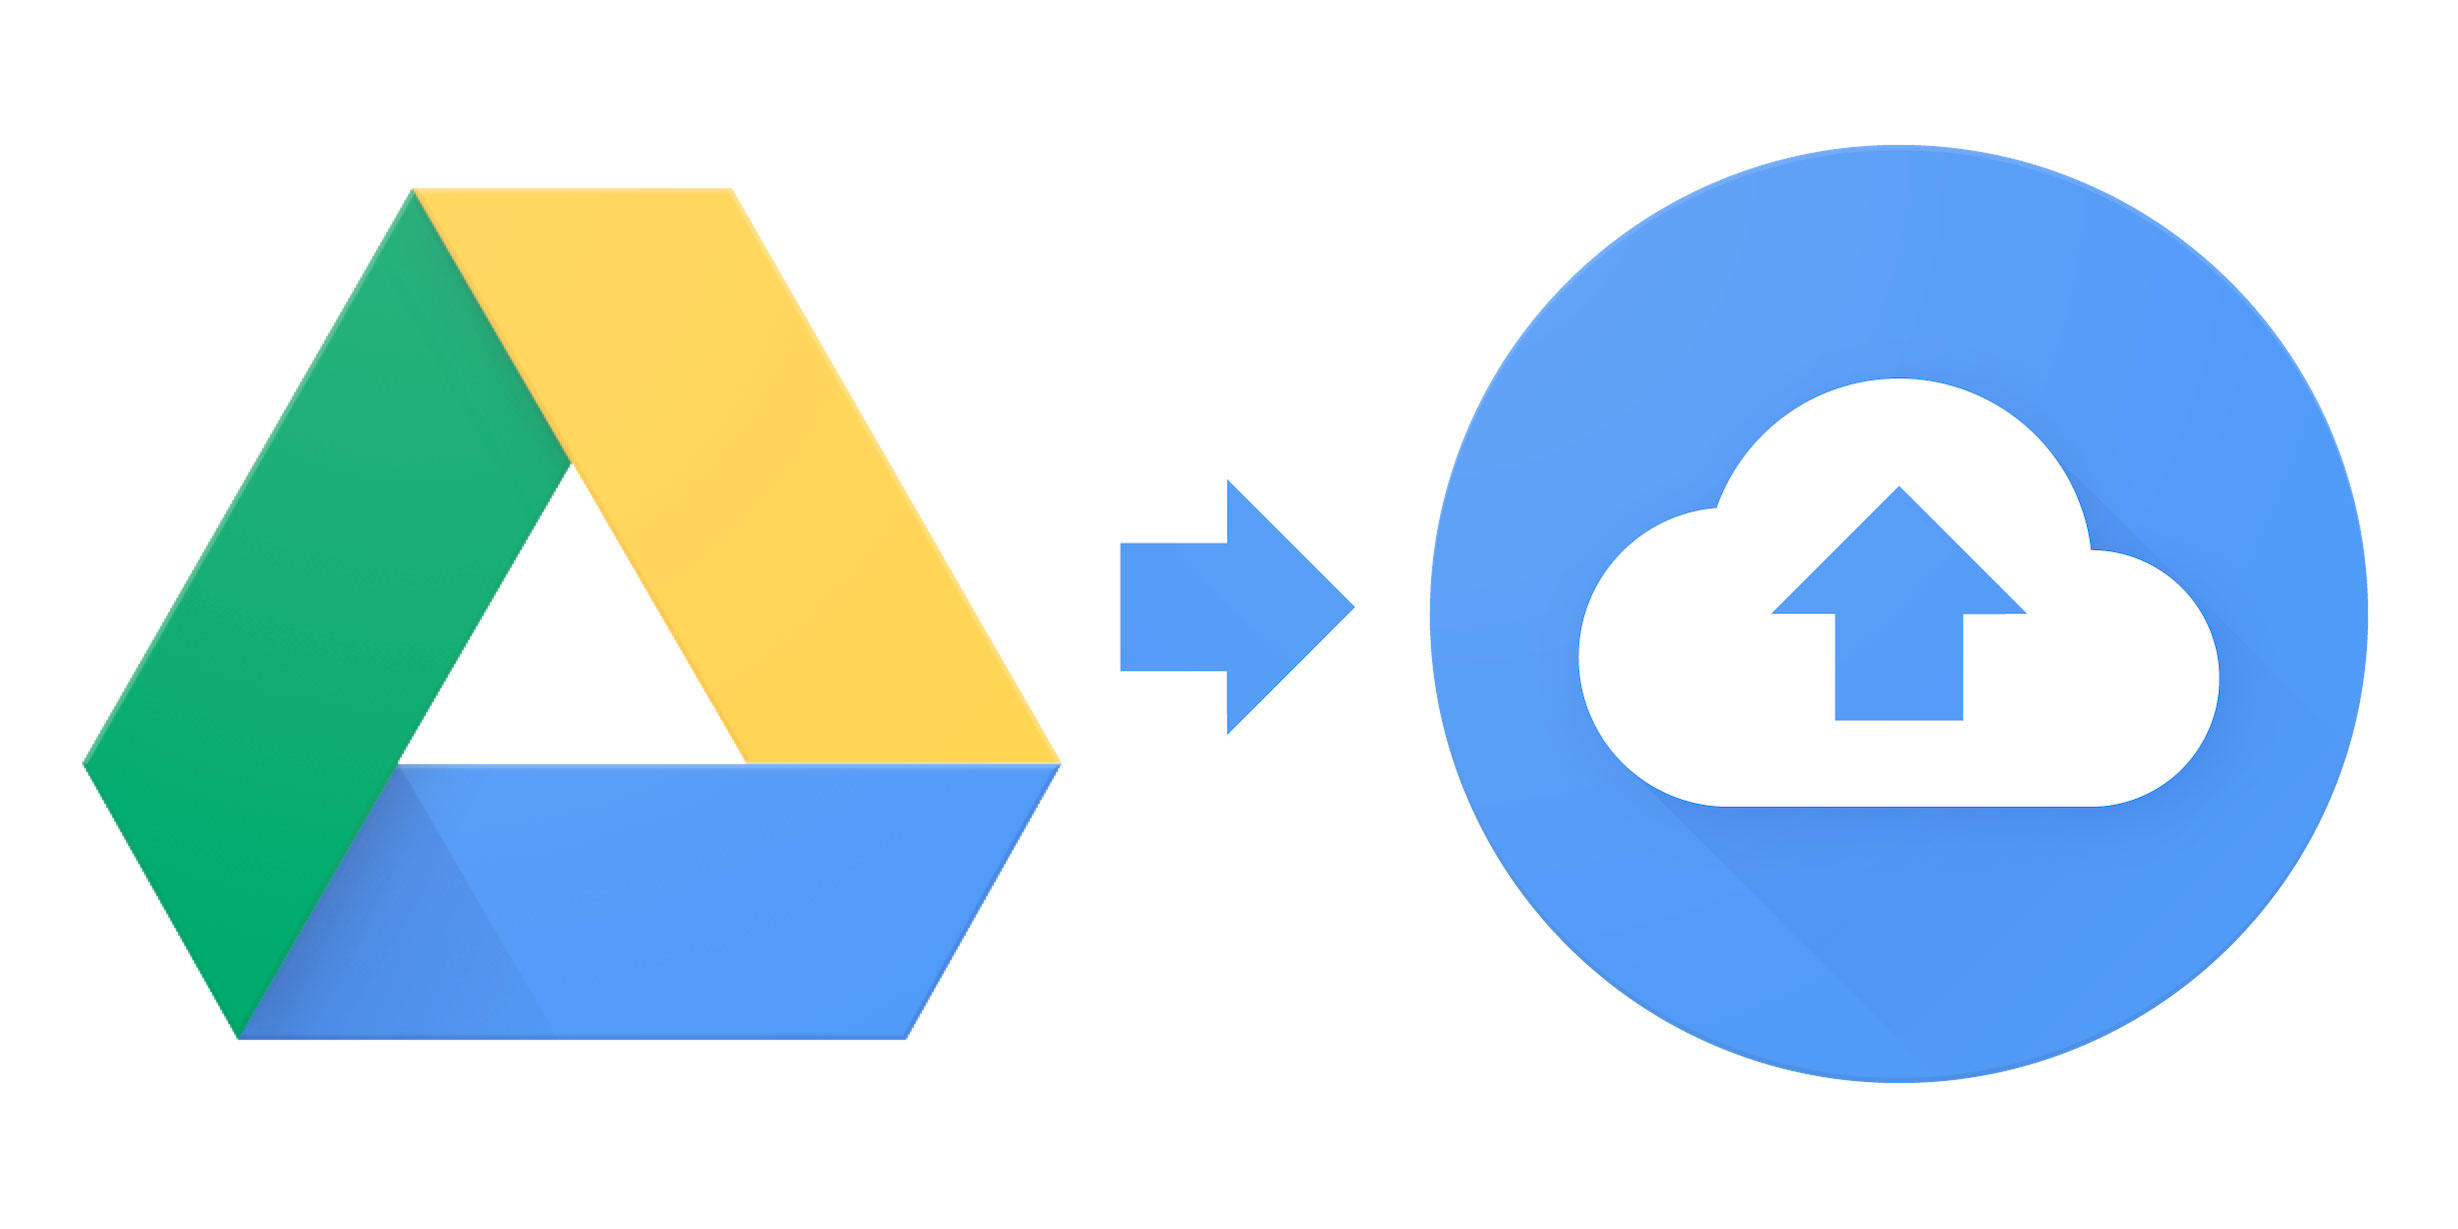 Google Drive will stop working March 18, 2018. Its replacement, Backup and Sync, is available now.